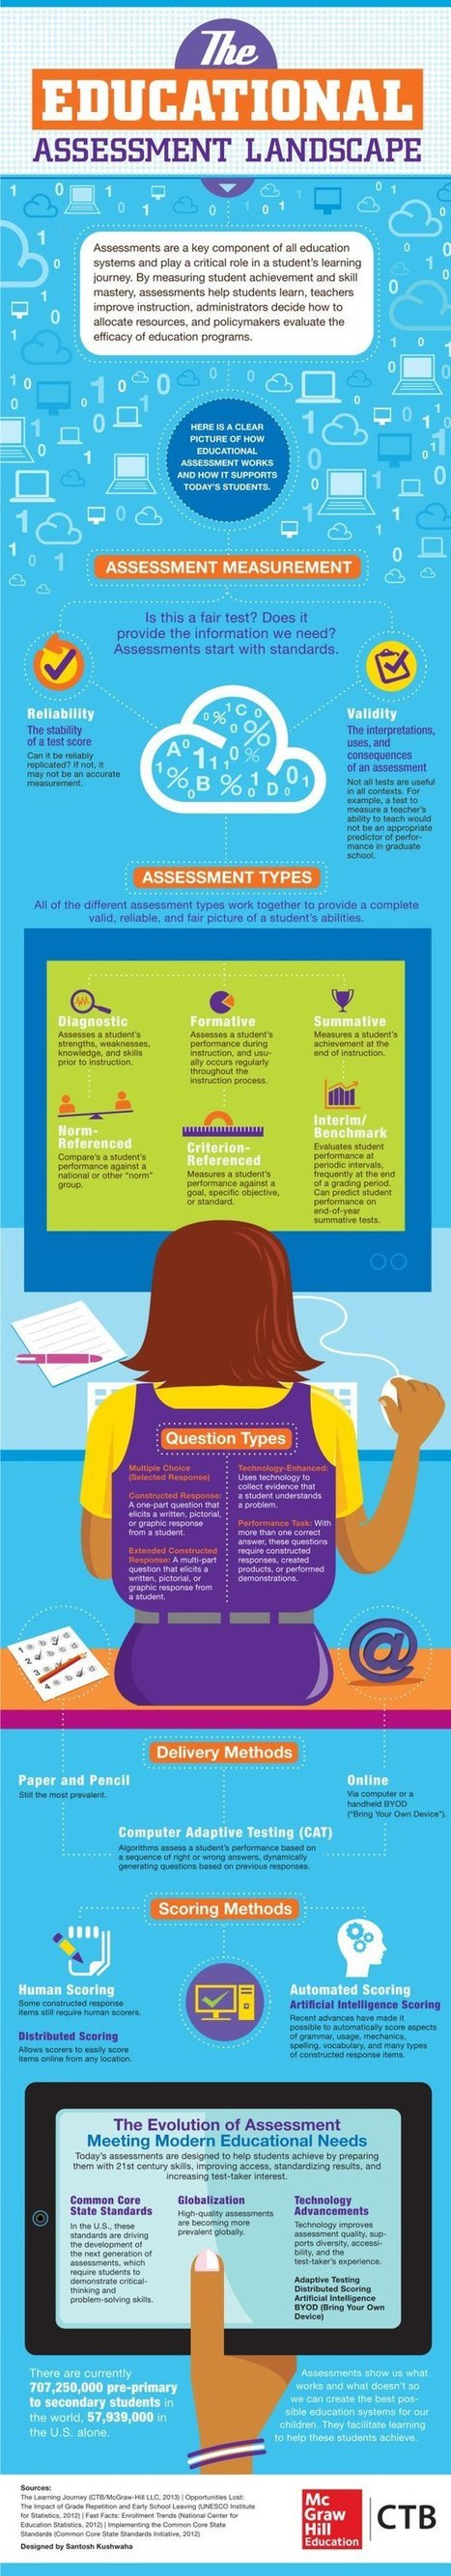 The Educational Assessment Landscape Infographic - e-Learning Infographics | ventures of e-learning instruction | Scoop.it